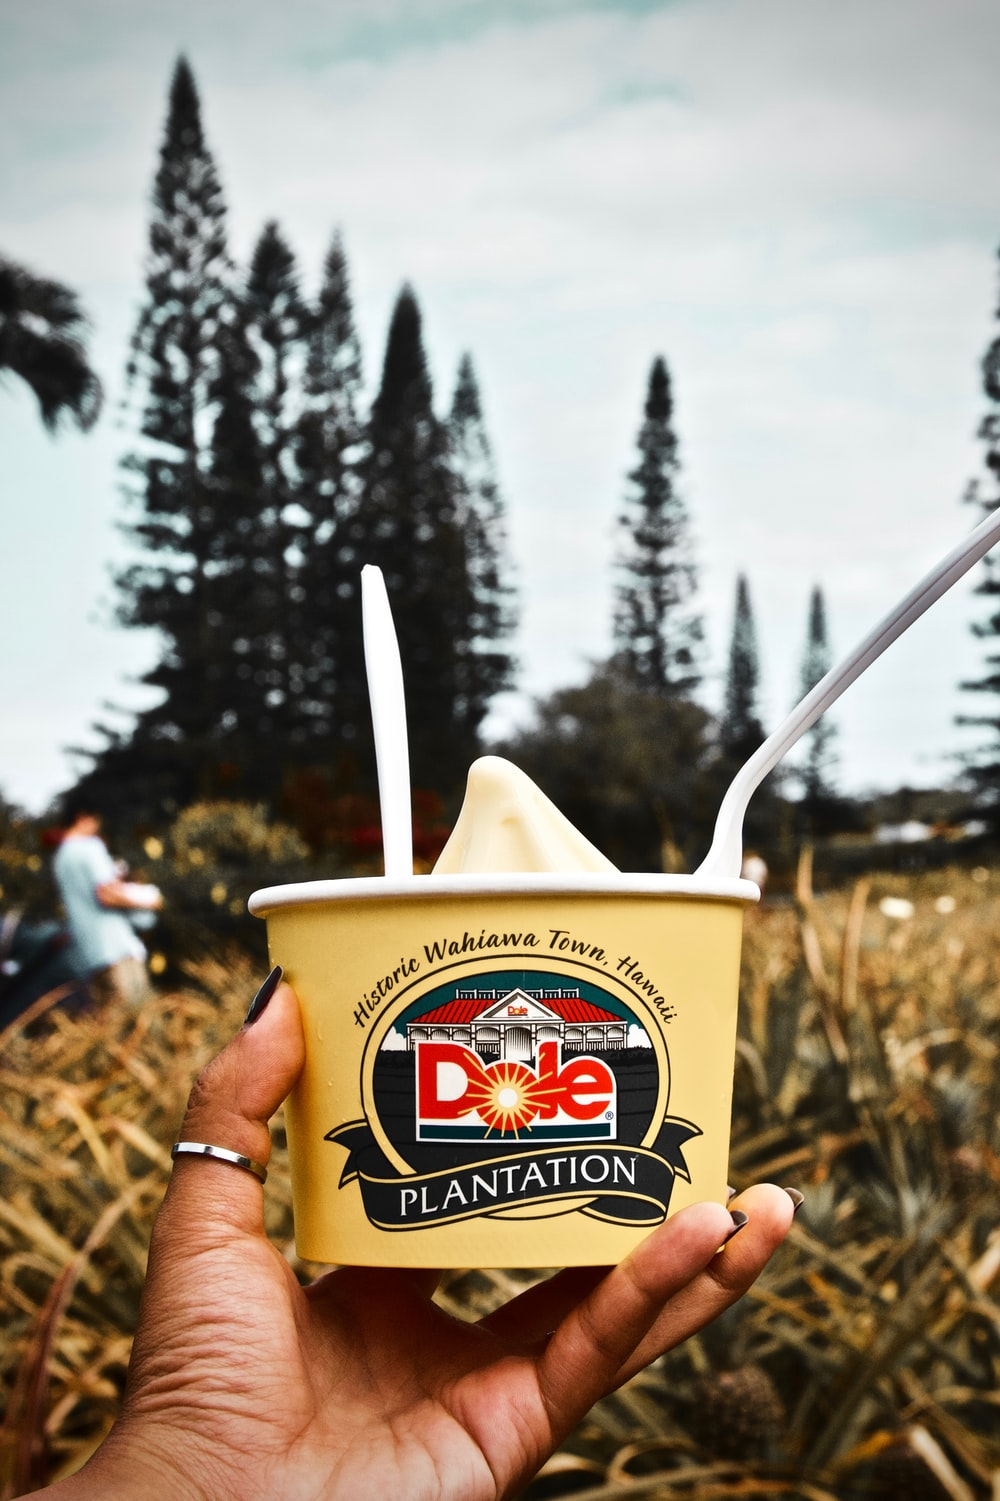 person holding Dole Plantation ice cream cup